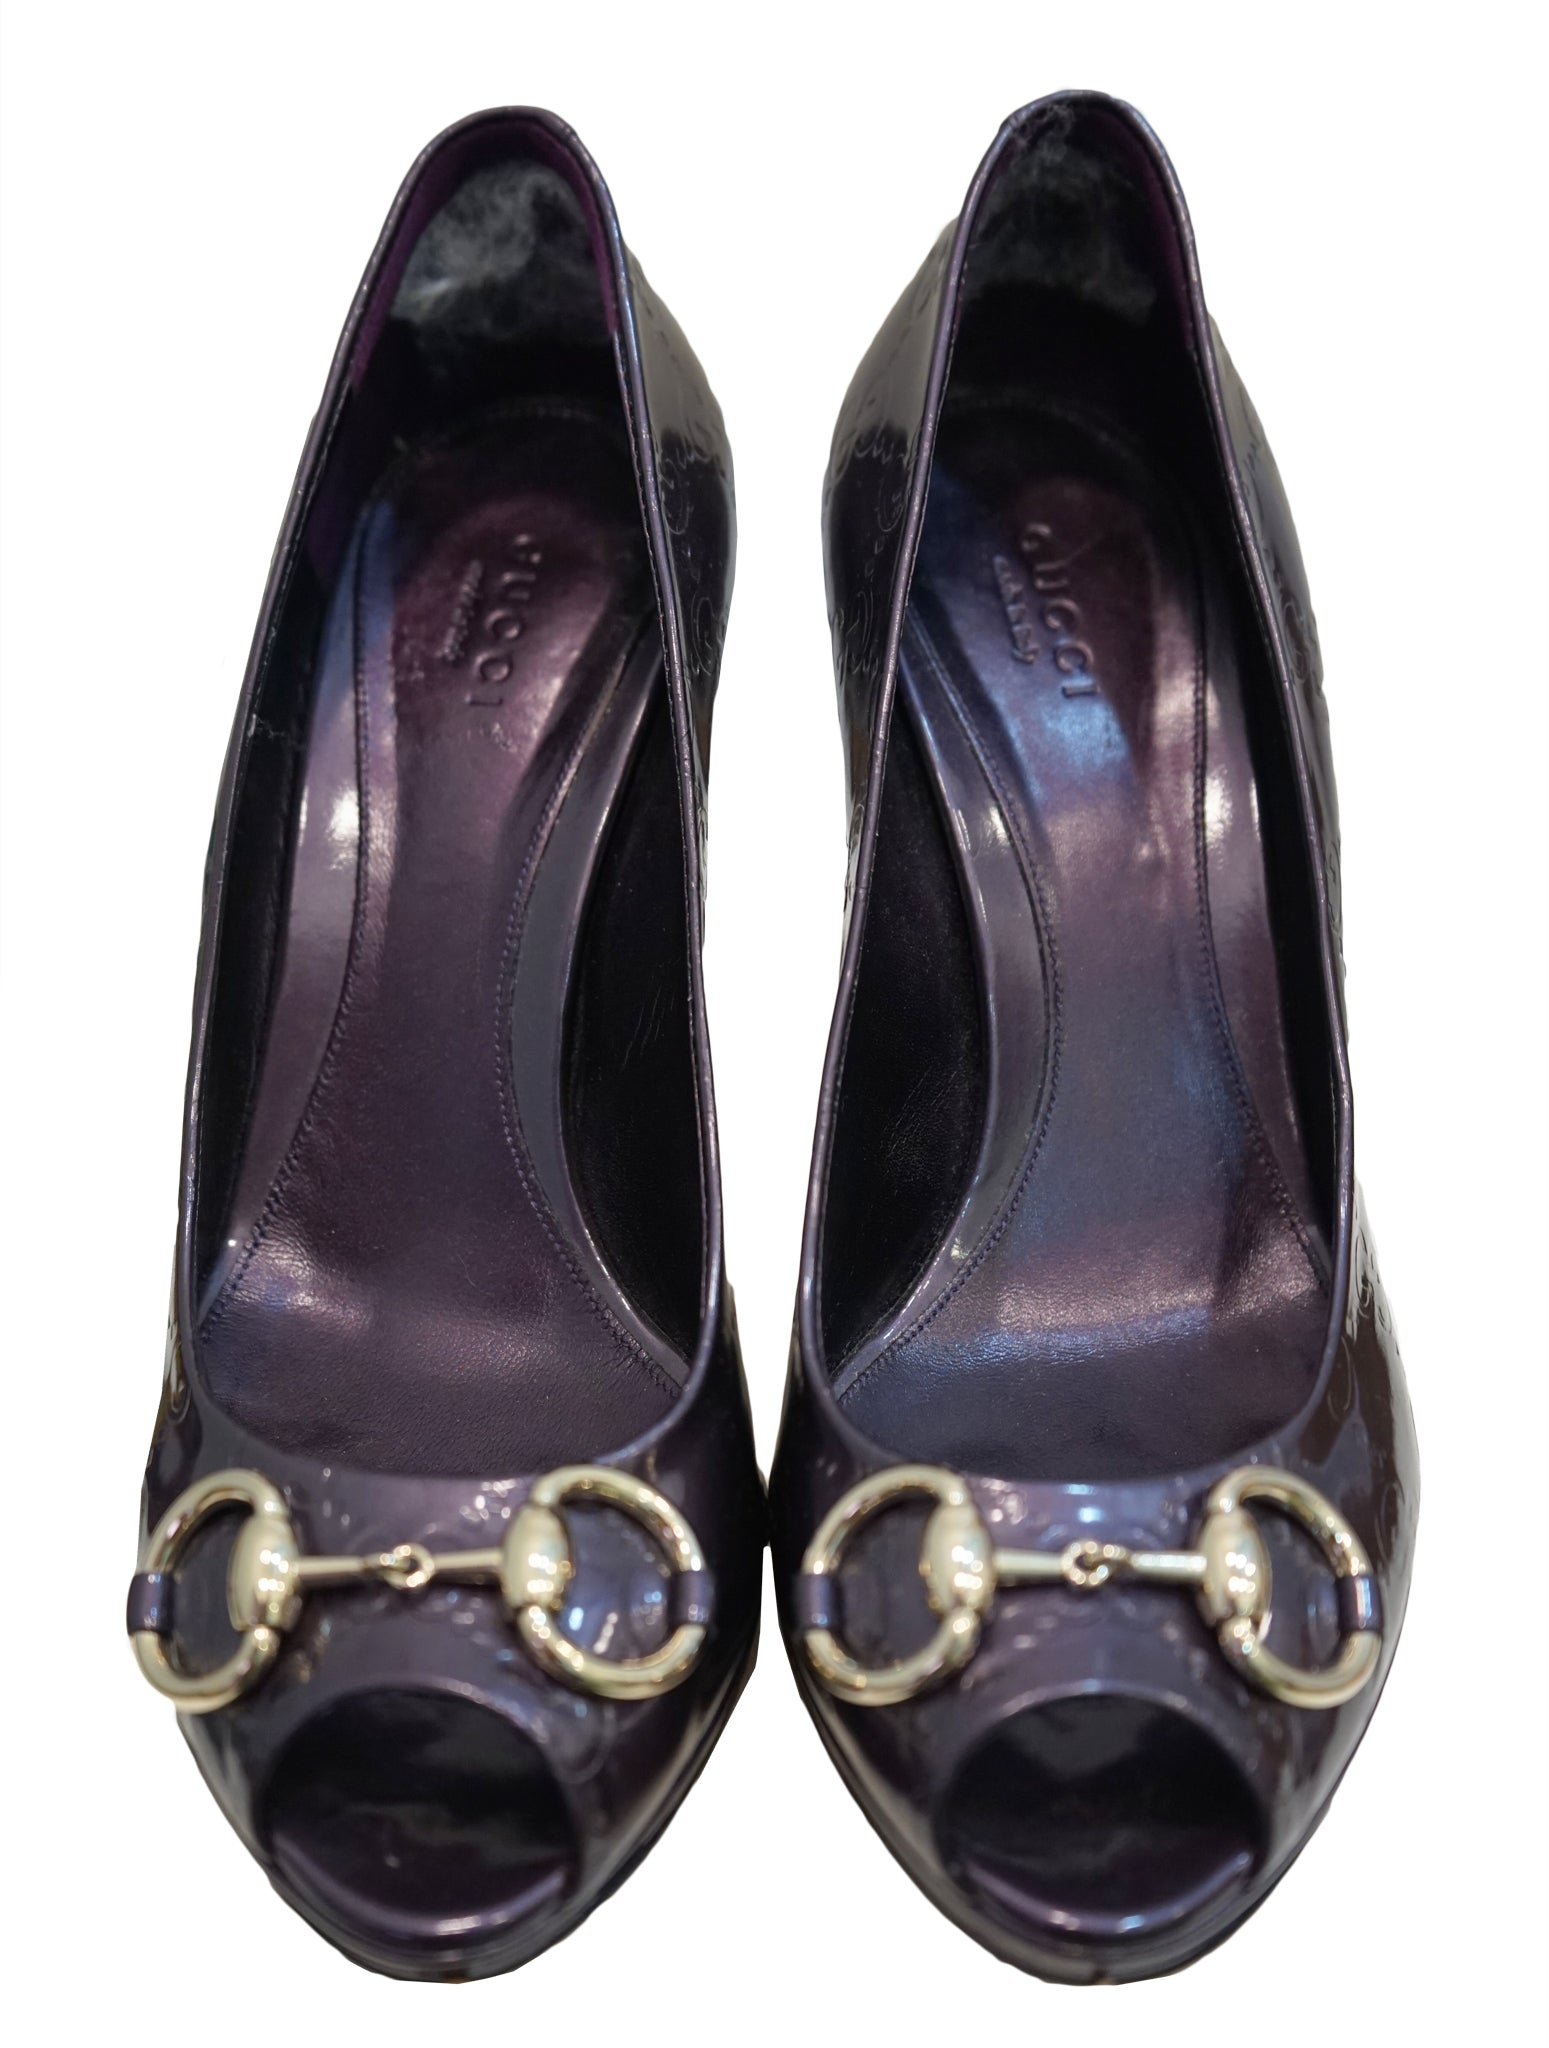 NEW HOLLYWOOD HORSEBIT PEEP TOE PUMPS